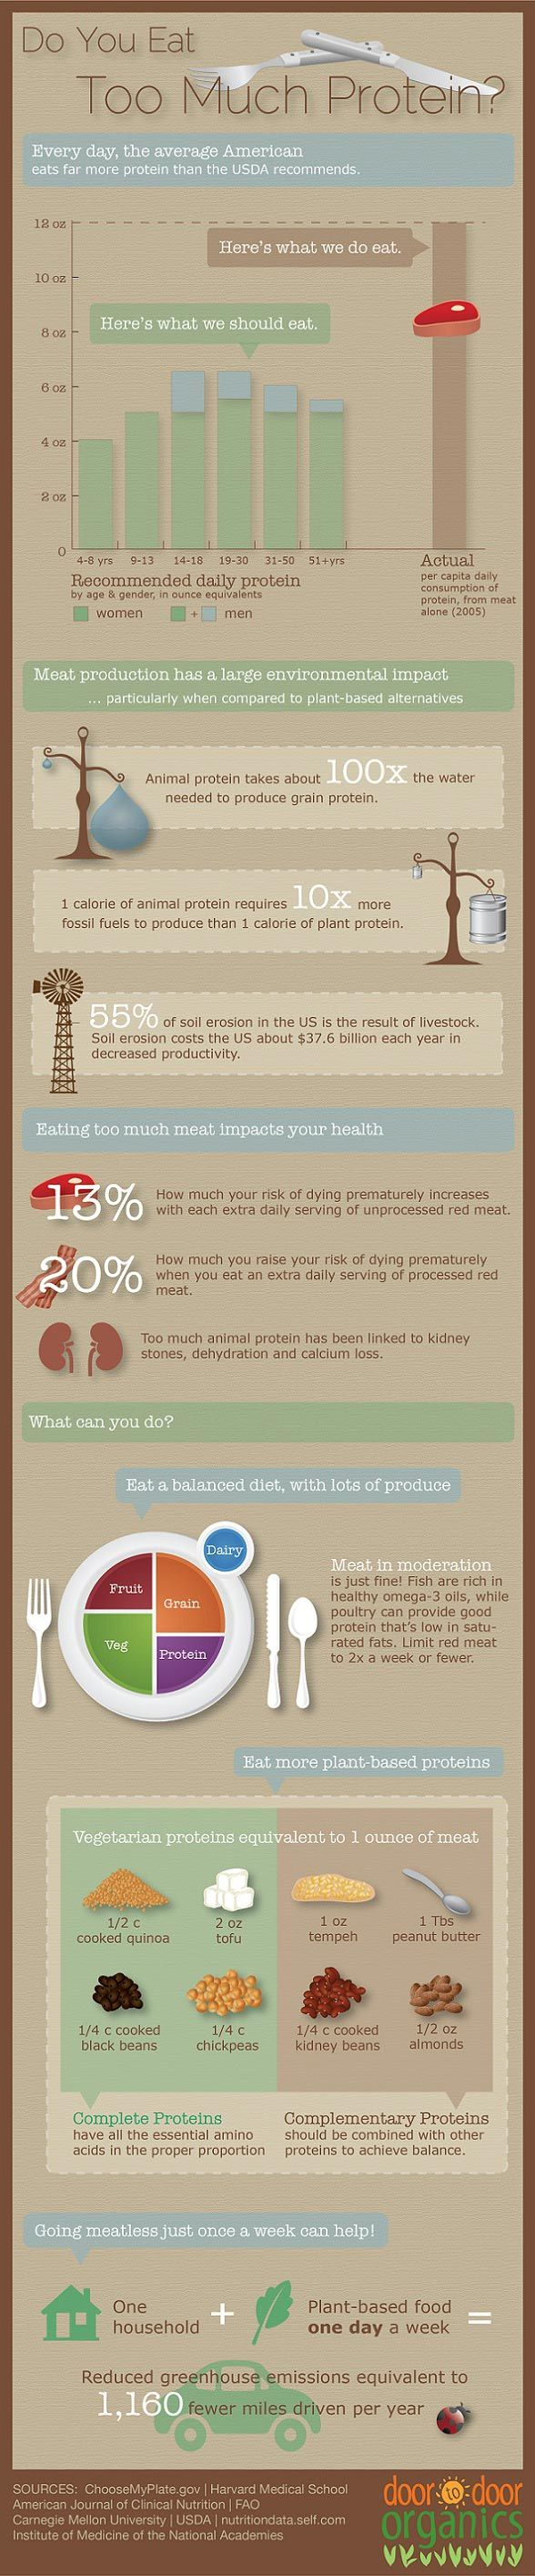 Really great infographic about how much protein we need, and how veg heads can get their equivalent amounts!